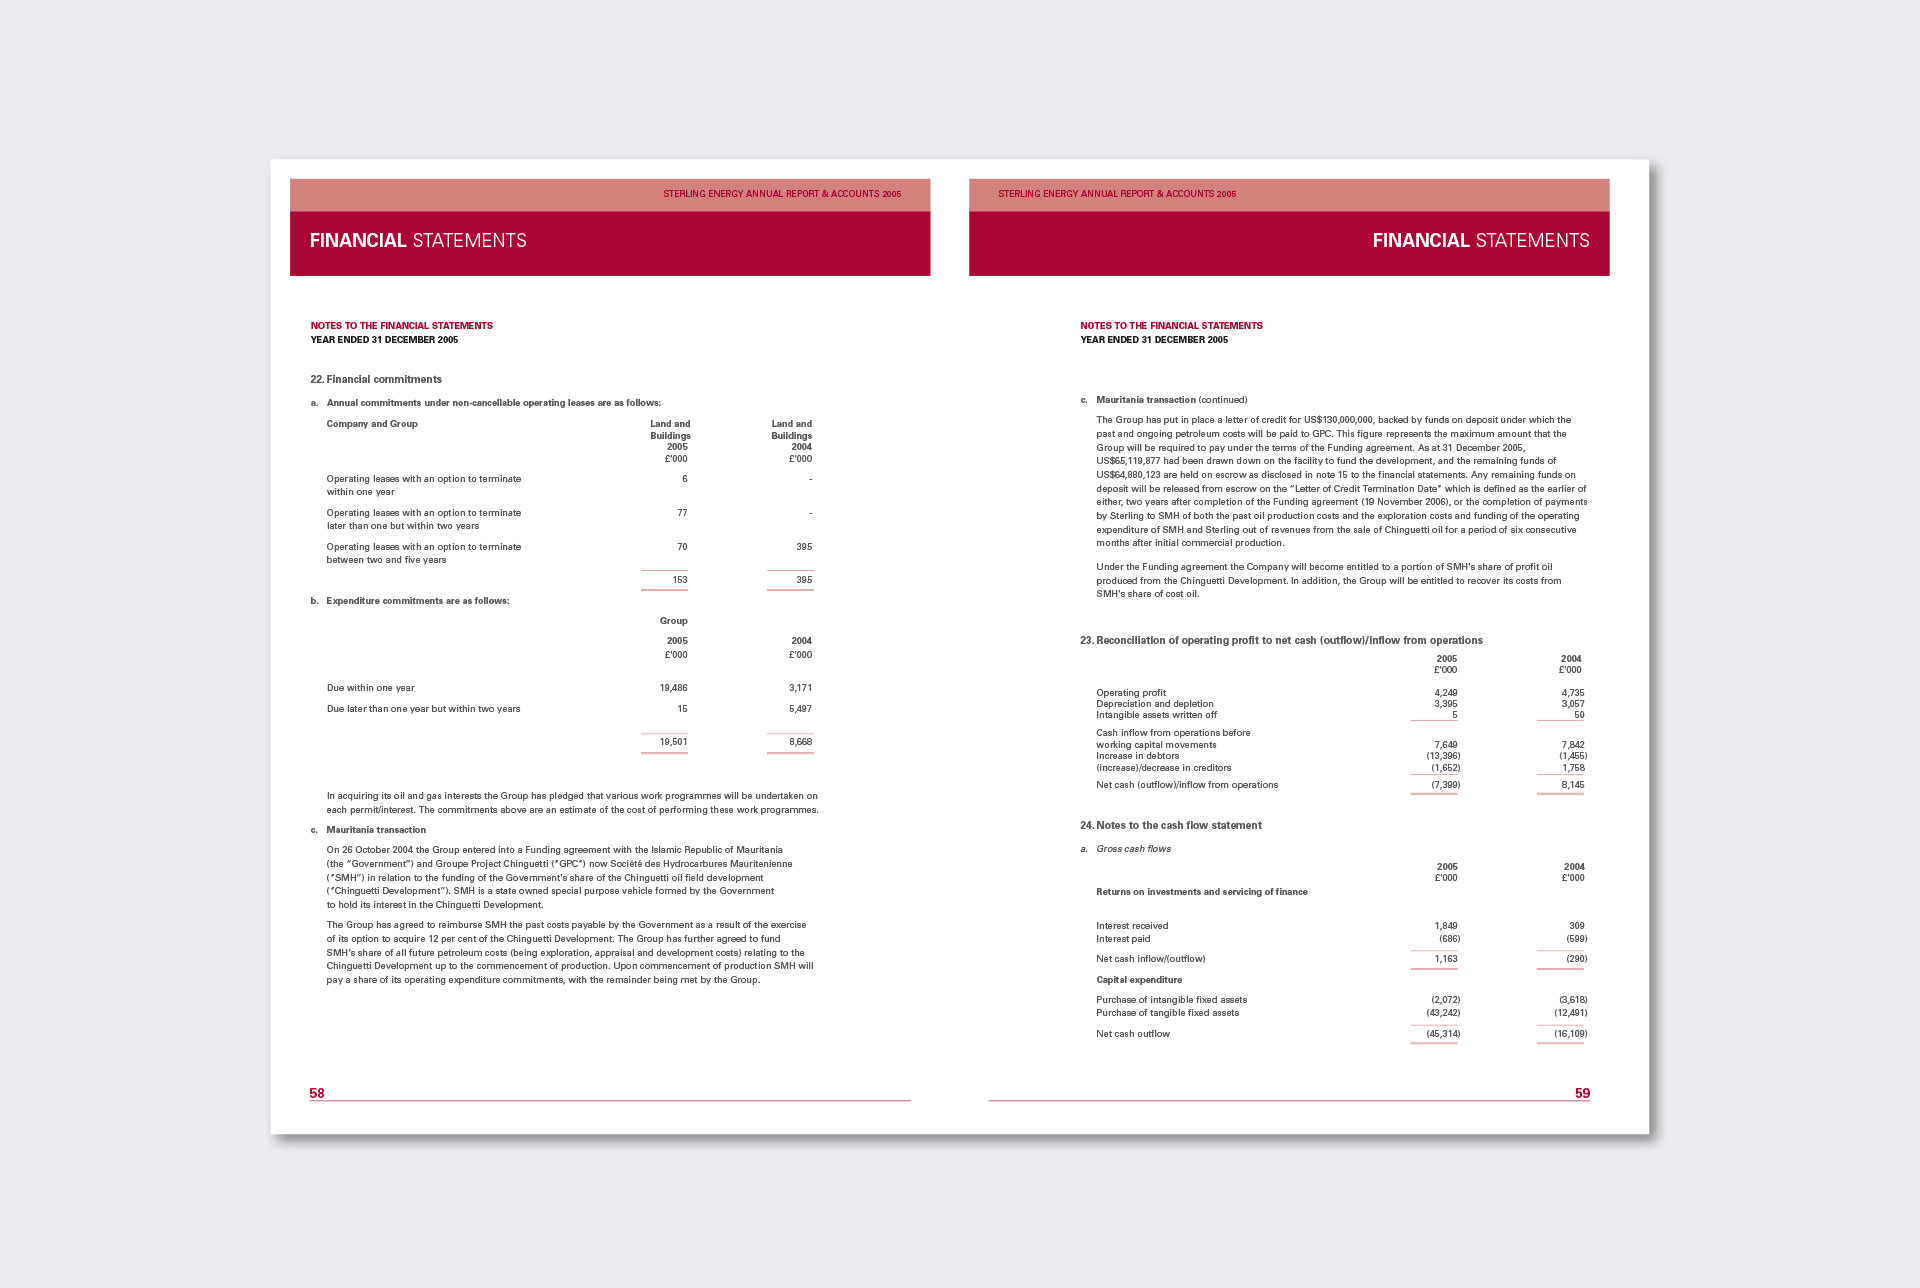 sterling-energy-annual-report-internal-pages.jpg